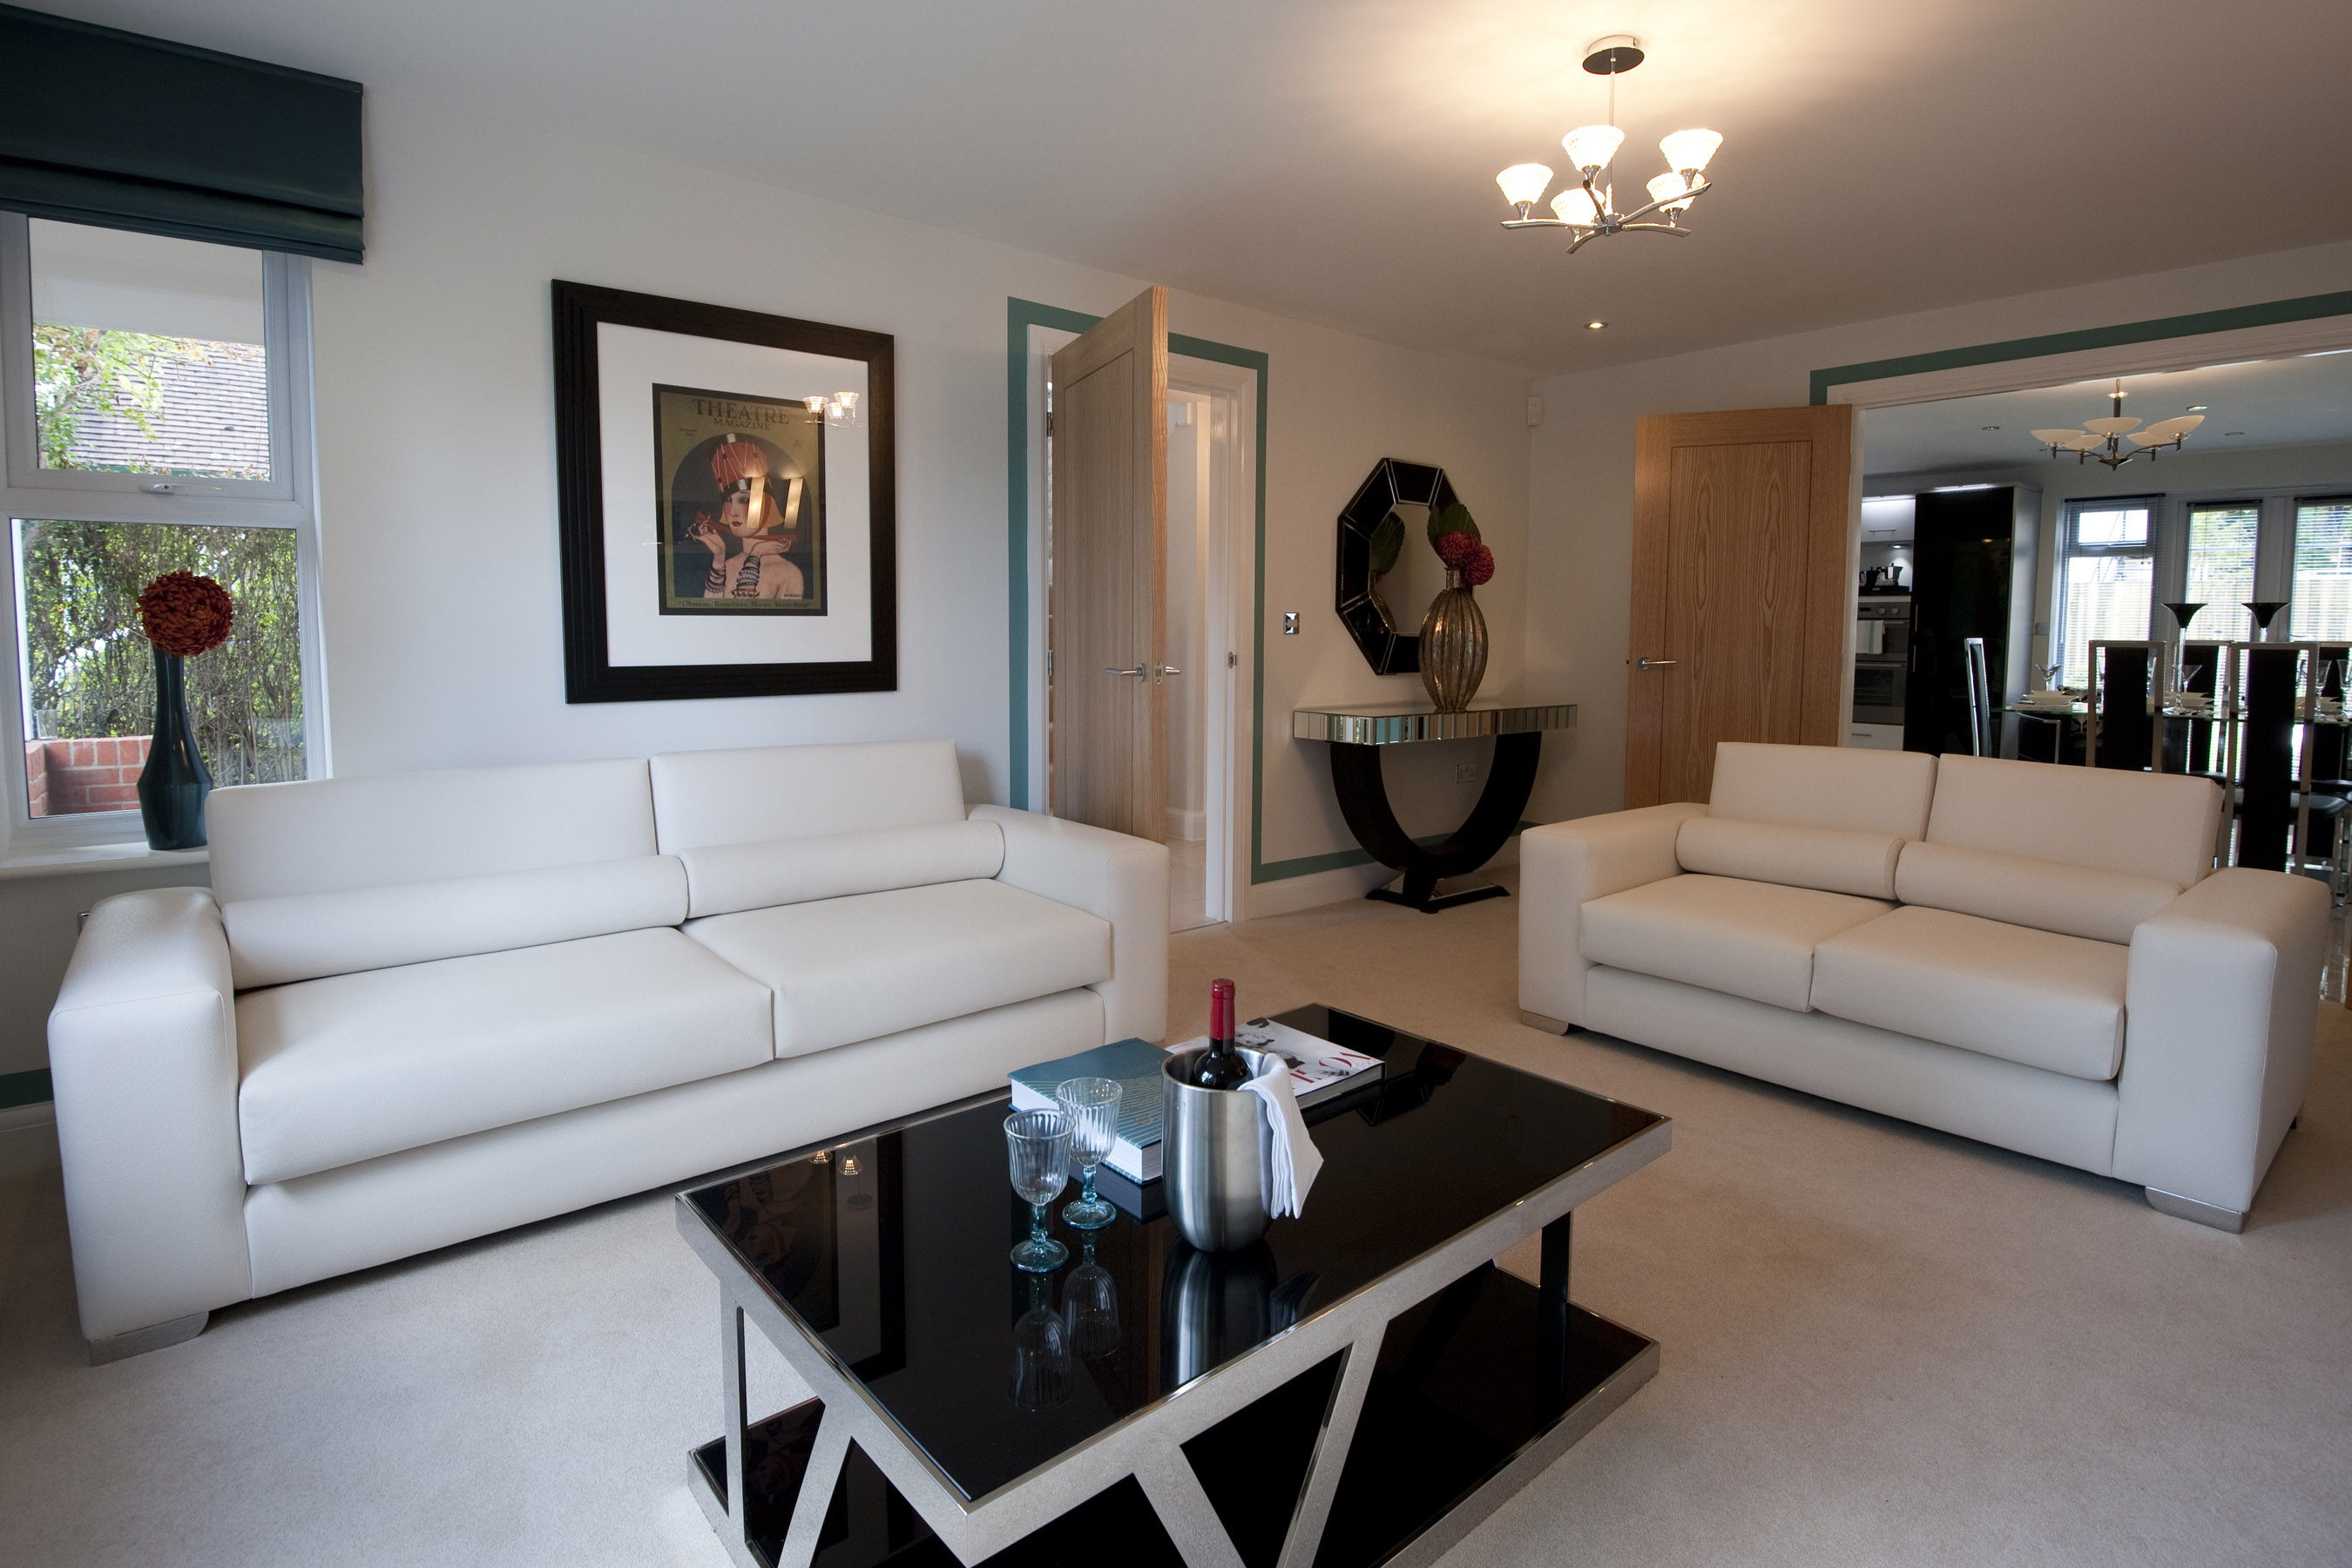 Luxury showhome for sale at taylor wimpey s banbury Home interior shows